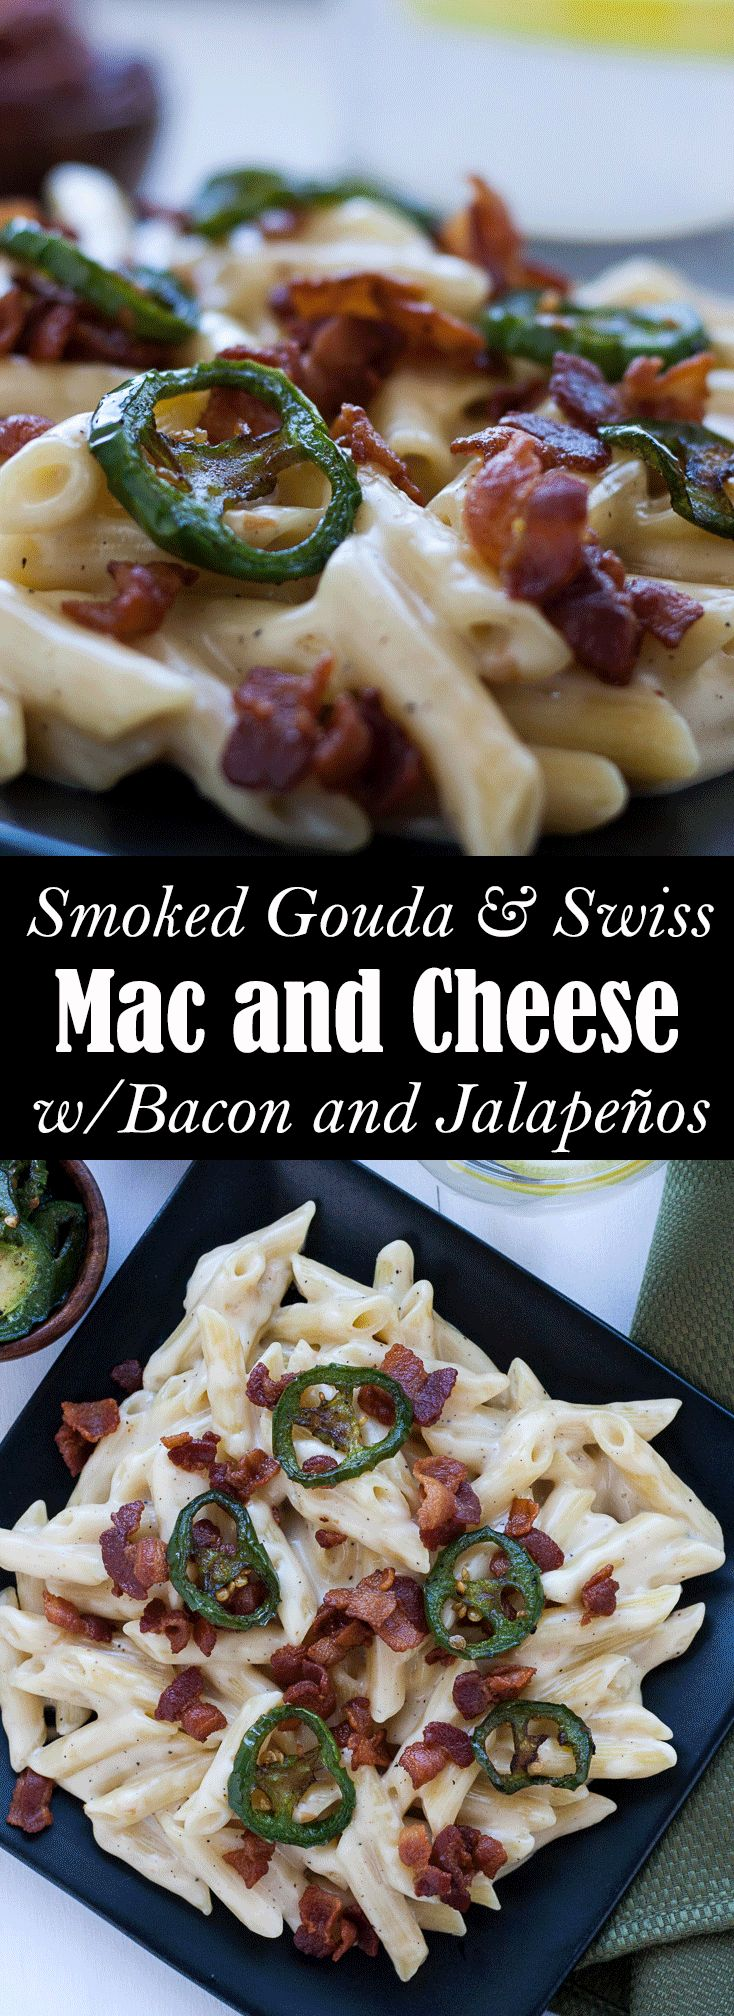 This easy flavorful grown up version of Gouda and Swiss mac n cheese with bacon and fried jalapeños is perfect for your next side dish or even main meal!